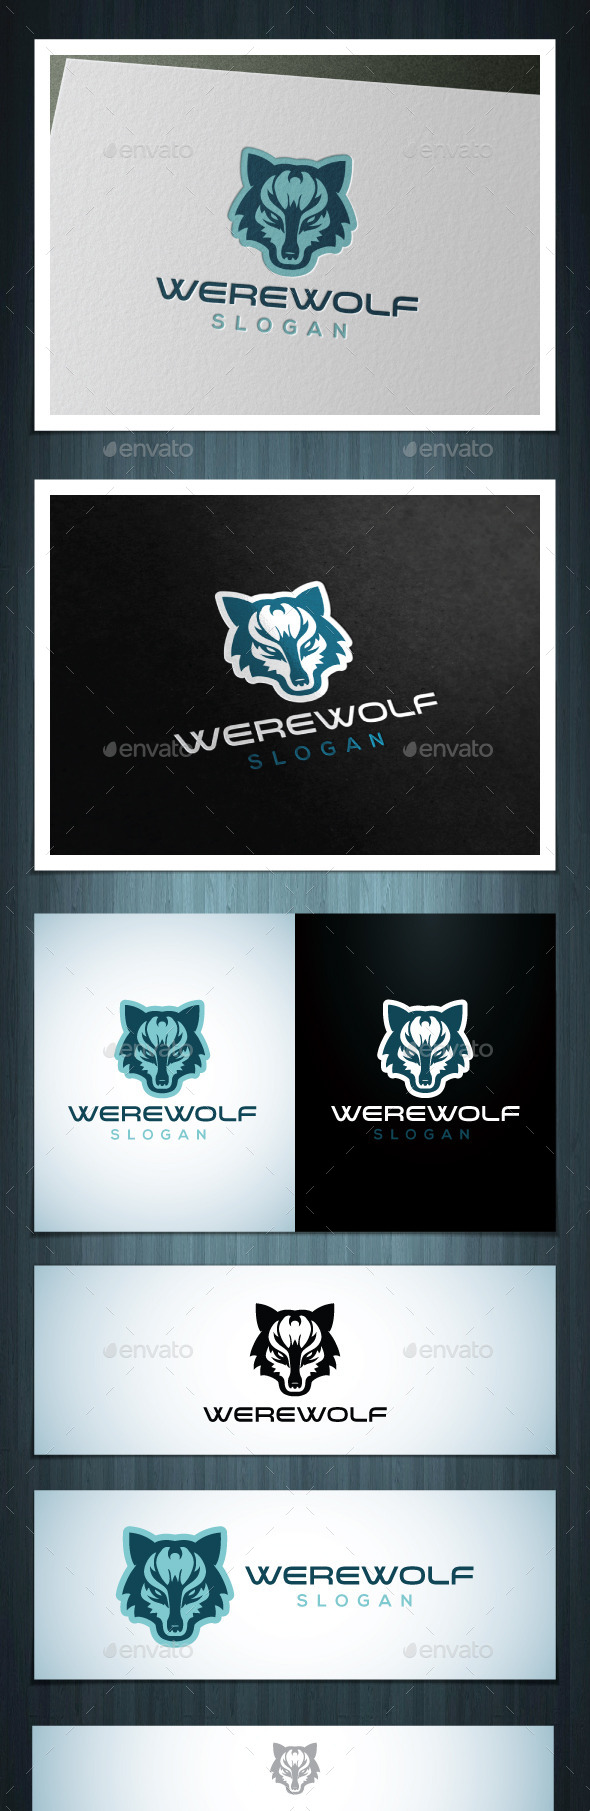 Werewolf - Vector Abstract